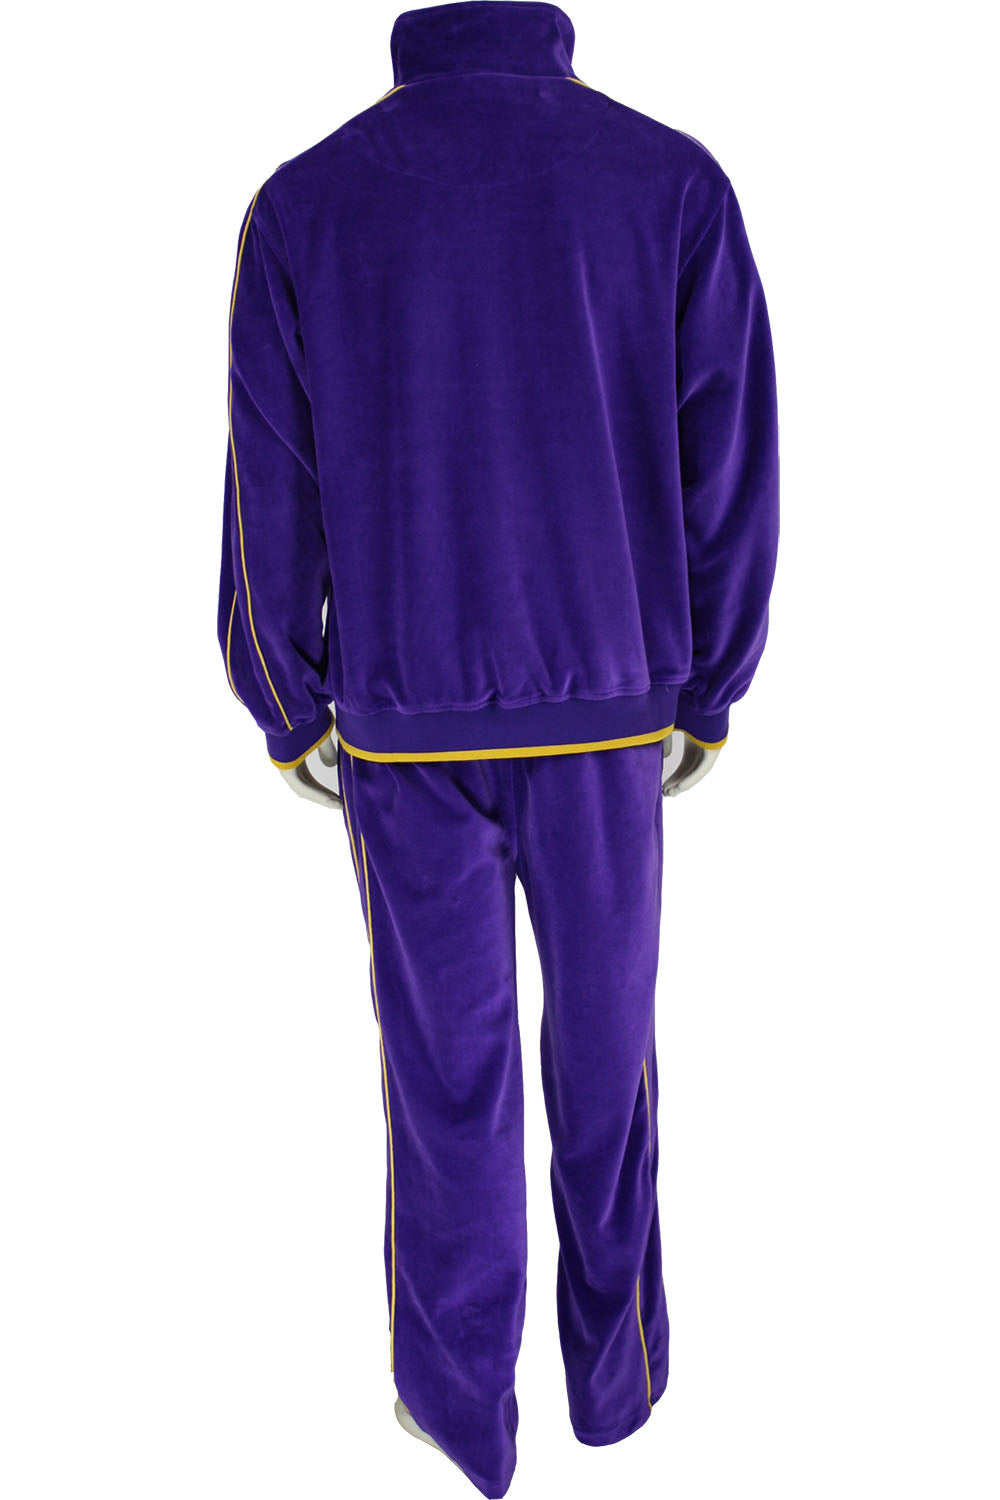 072850896546 Mens Purple Velour Tracksuit with Yellow Piping